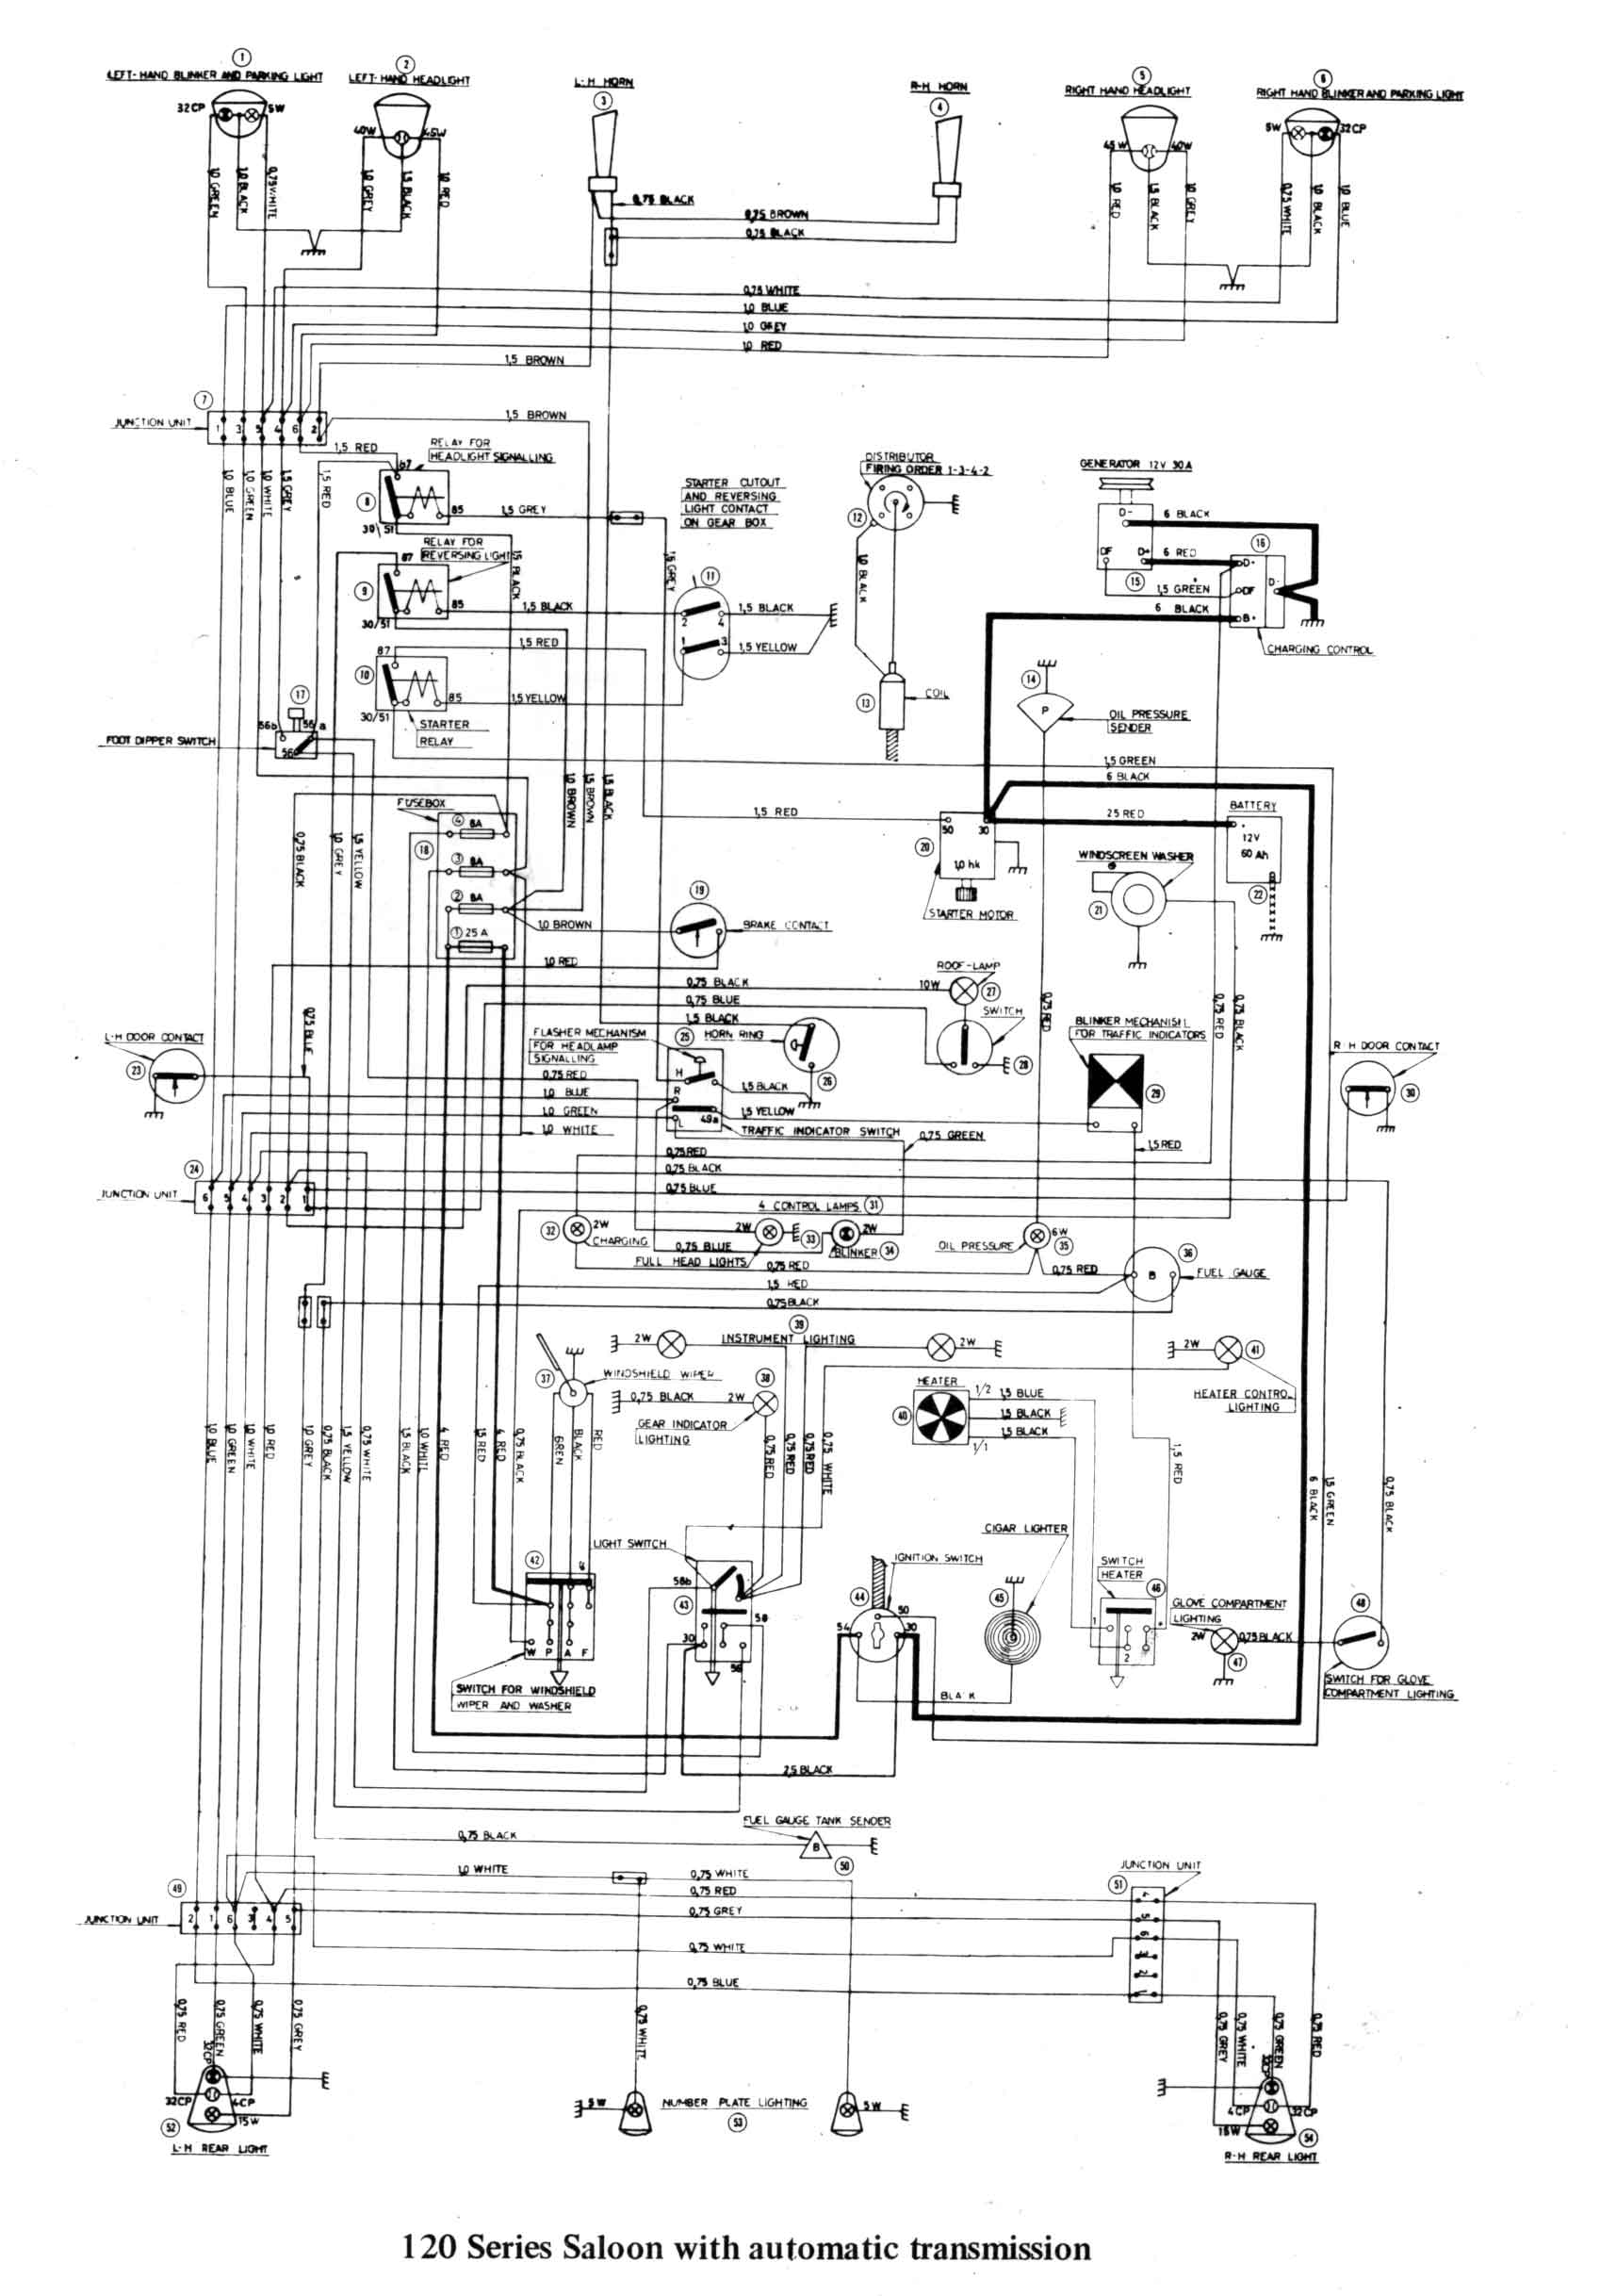 s40 wiring diagram volvo s stereo wiring diagram wiring diagram and Fluorescent Light Wiring volvo s radio wiring diagram wiring diagrams and schematics wiring diagram volvo s40 1997